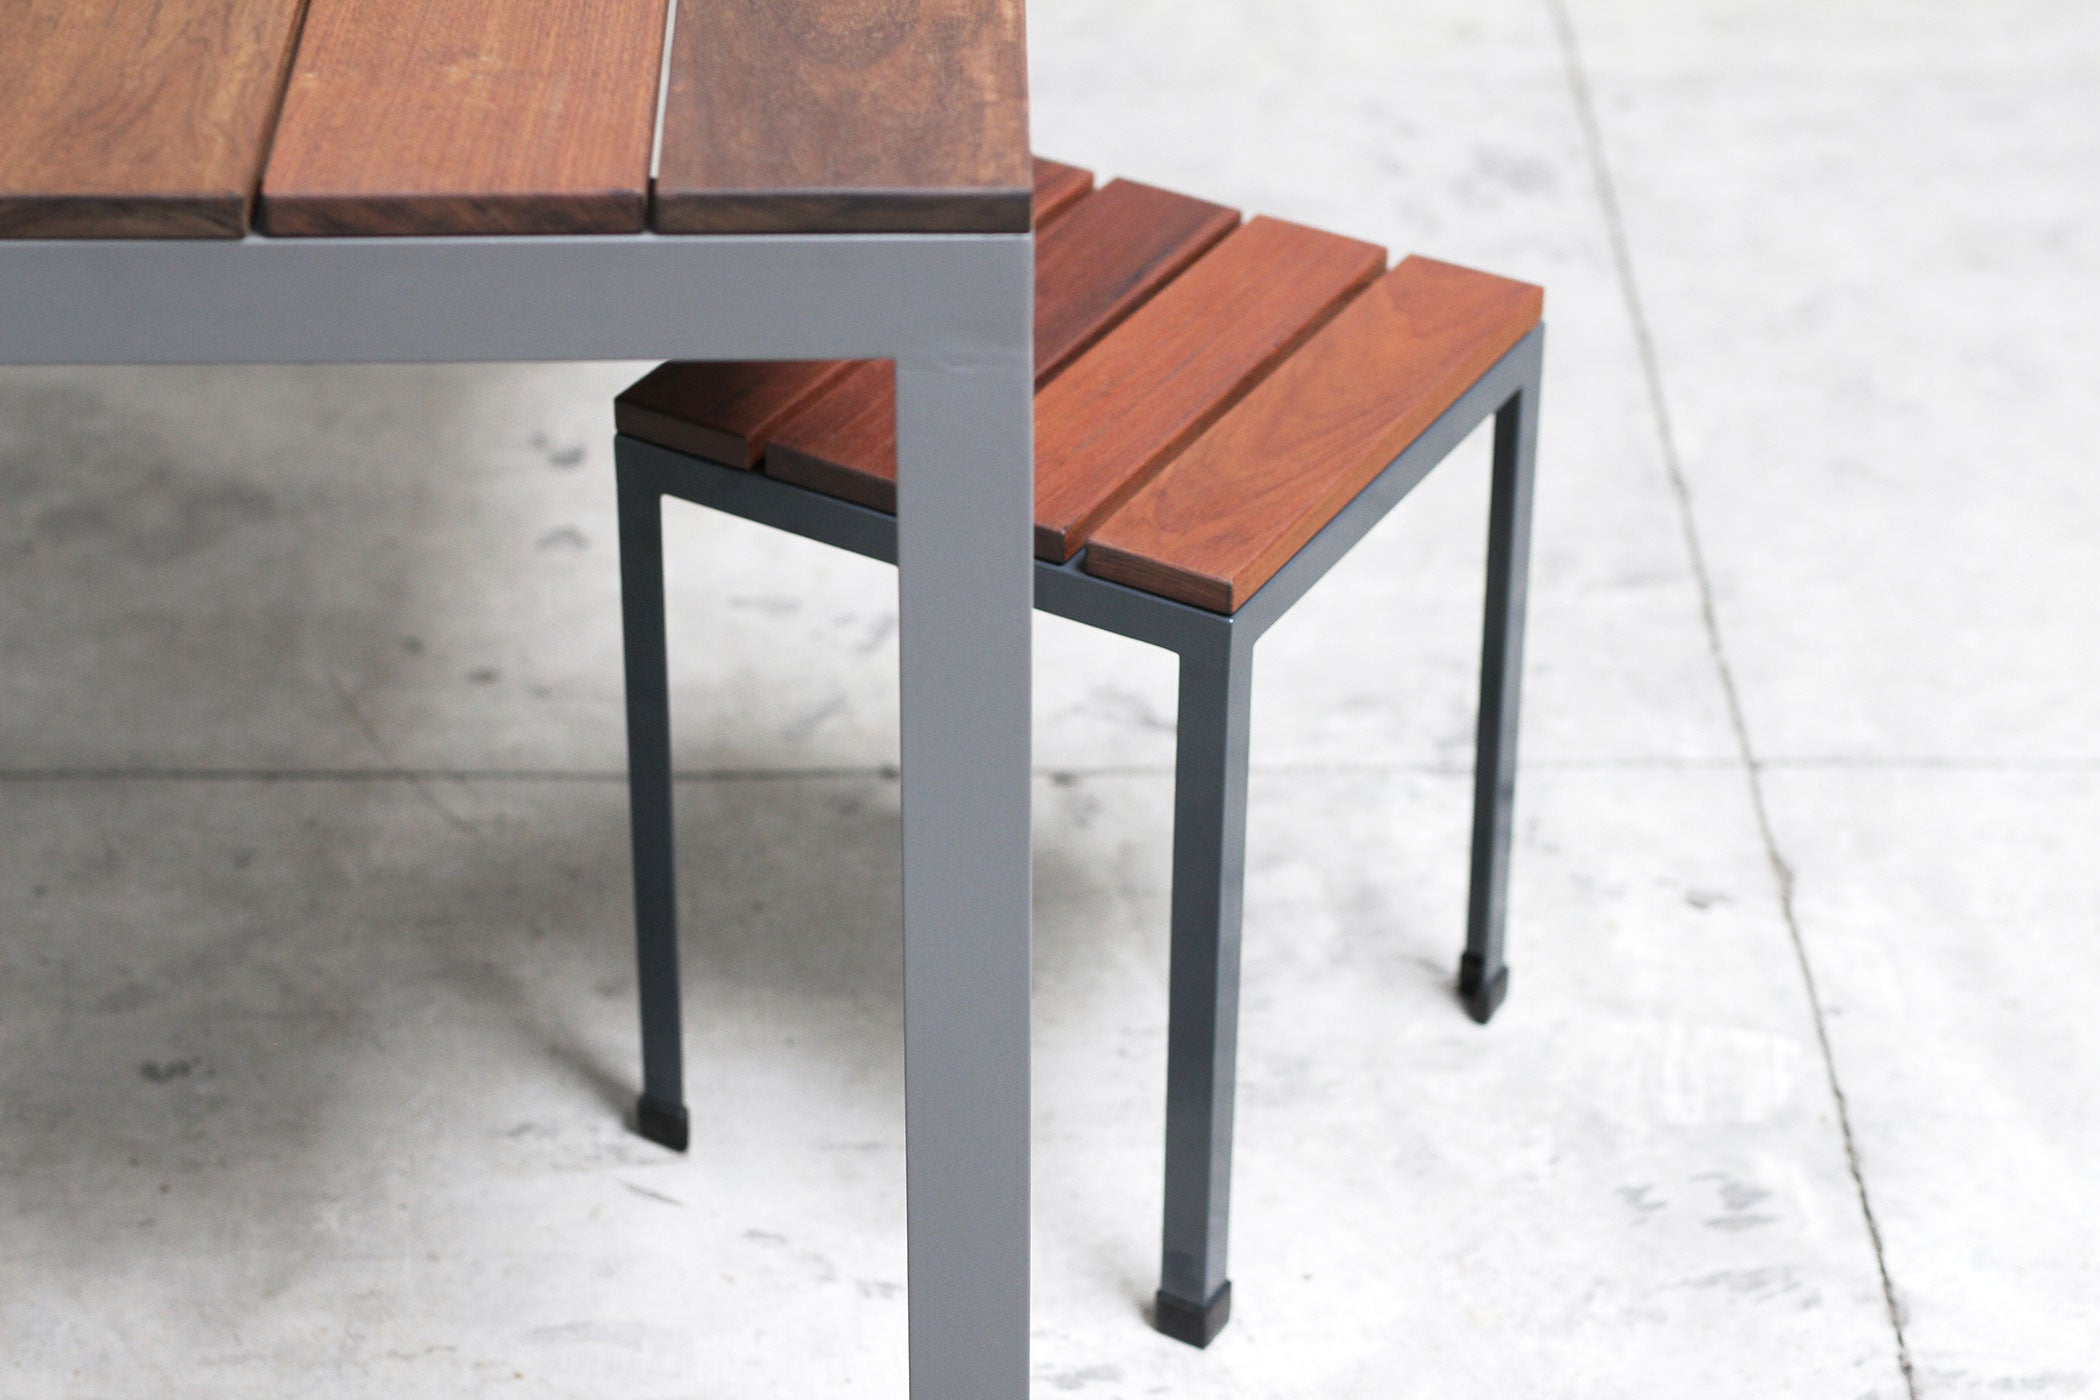 RAD Furniture's Slatted Wood Knockaround Stools with Slatted Wood-top Dining Table